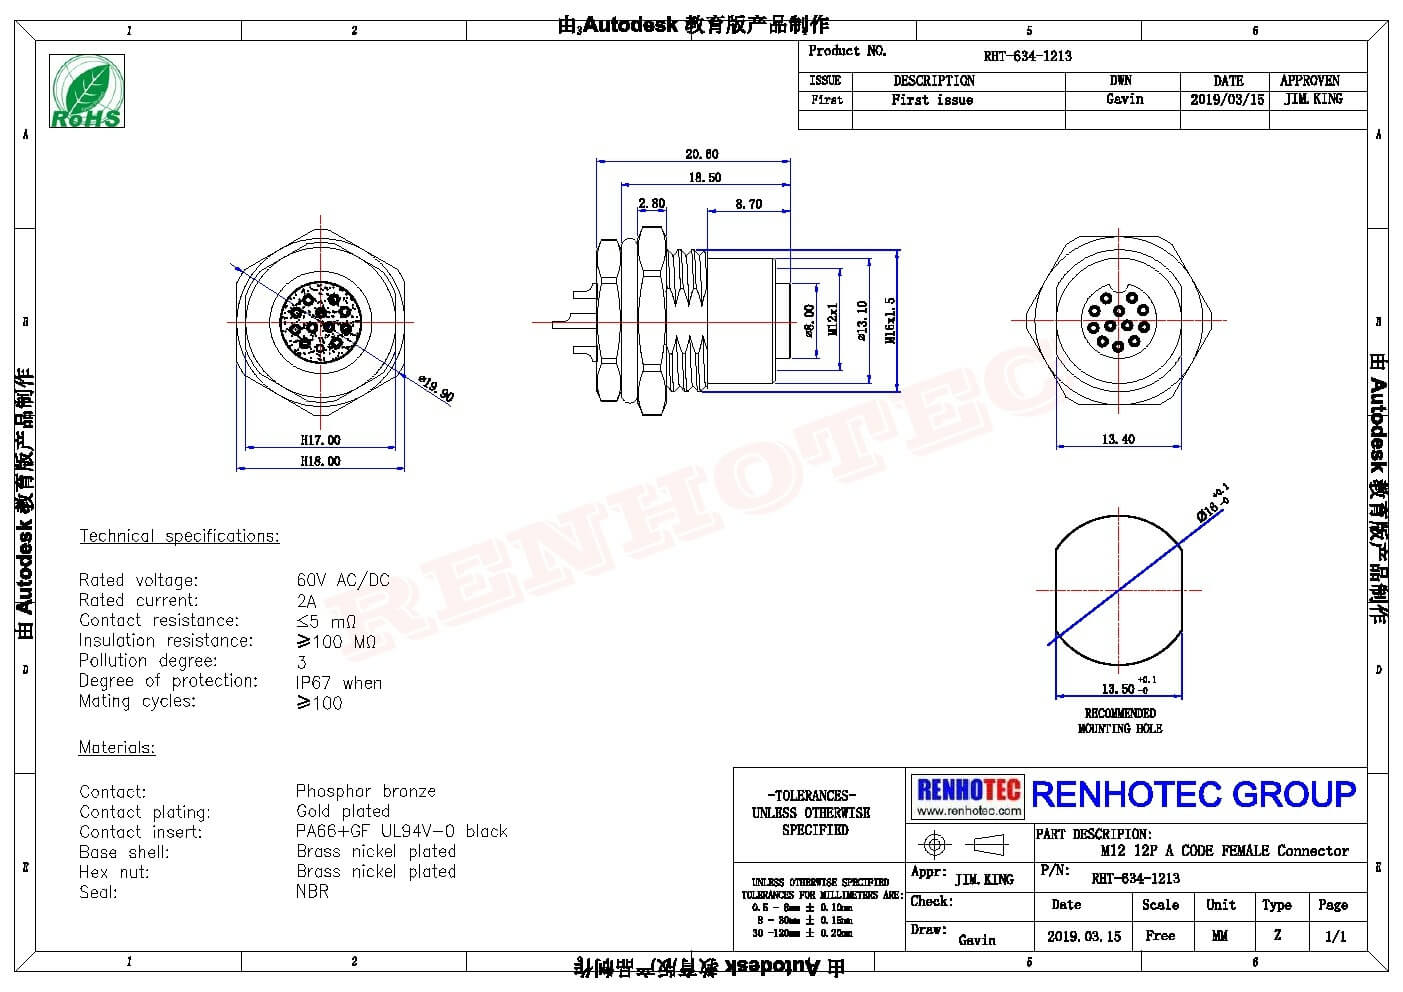 m12 12 pin female connector front mount with single wire harness 50cm M11 Wiring Diagram